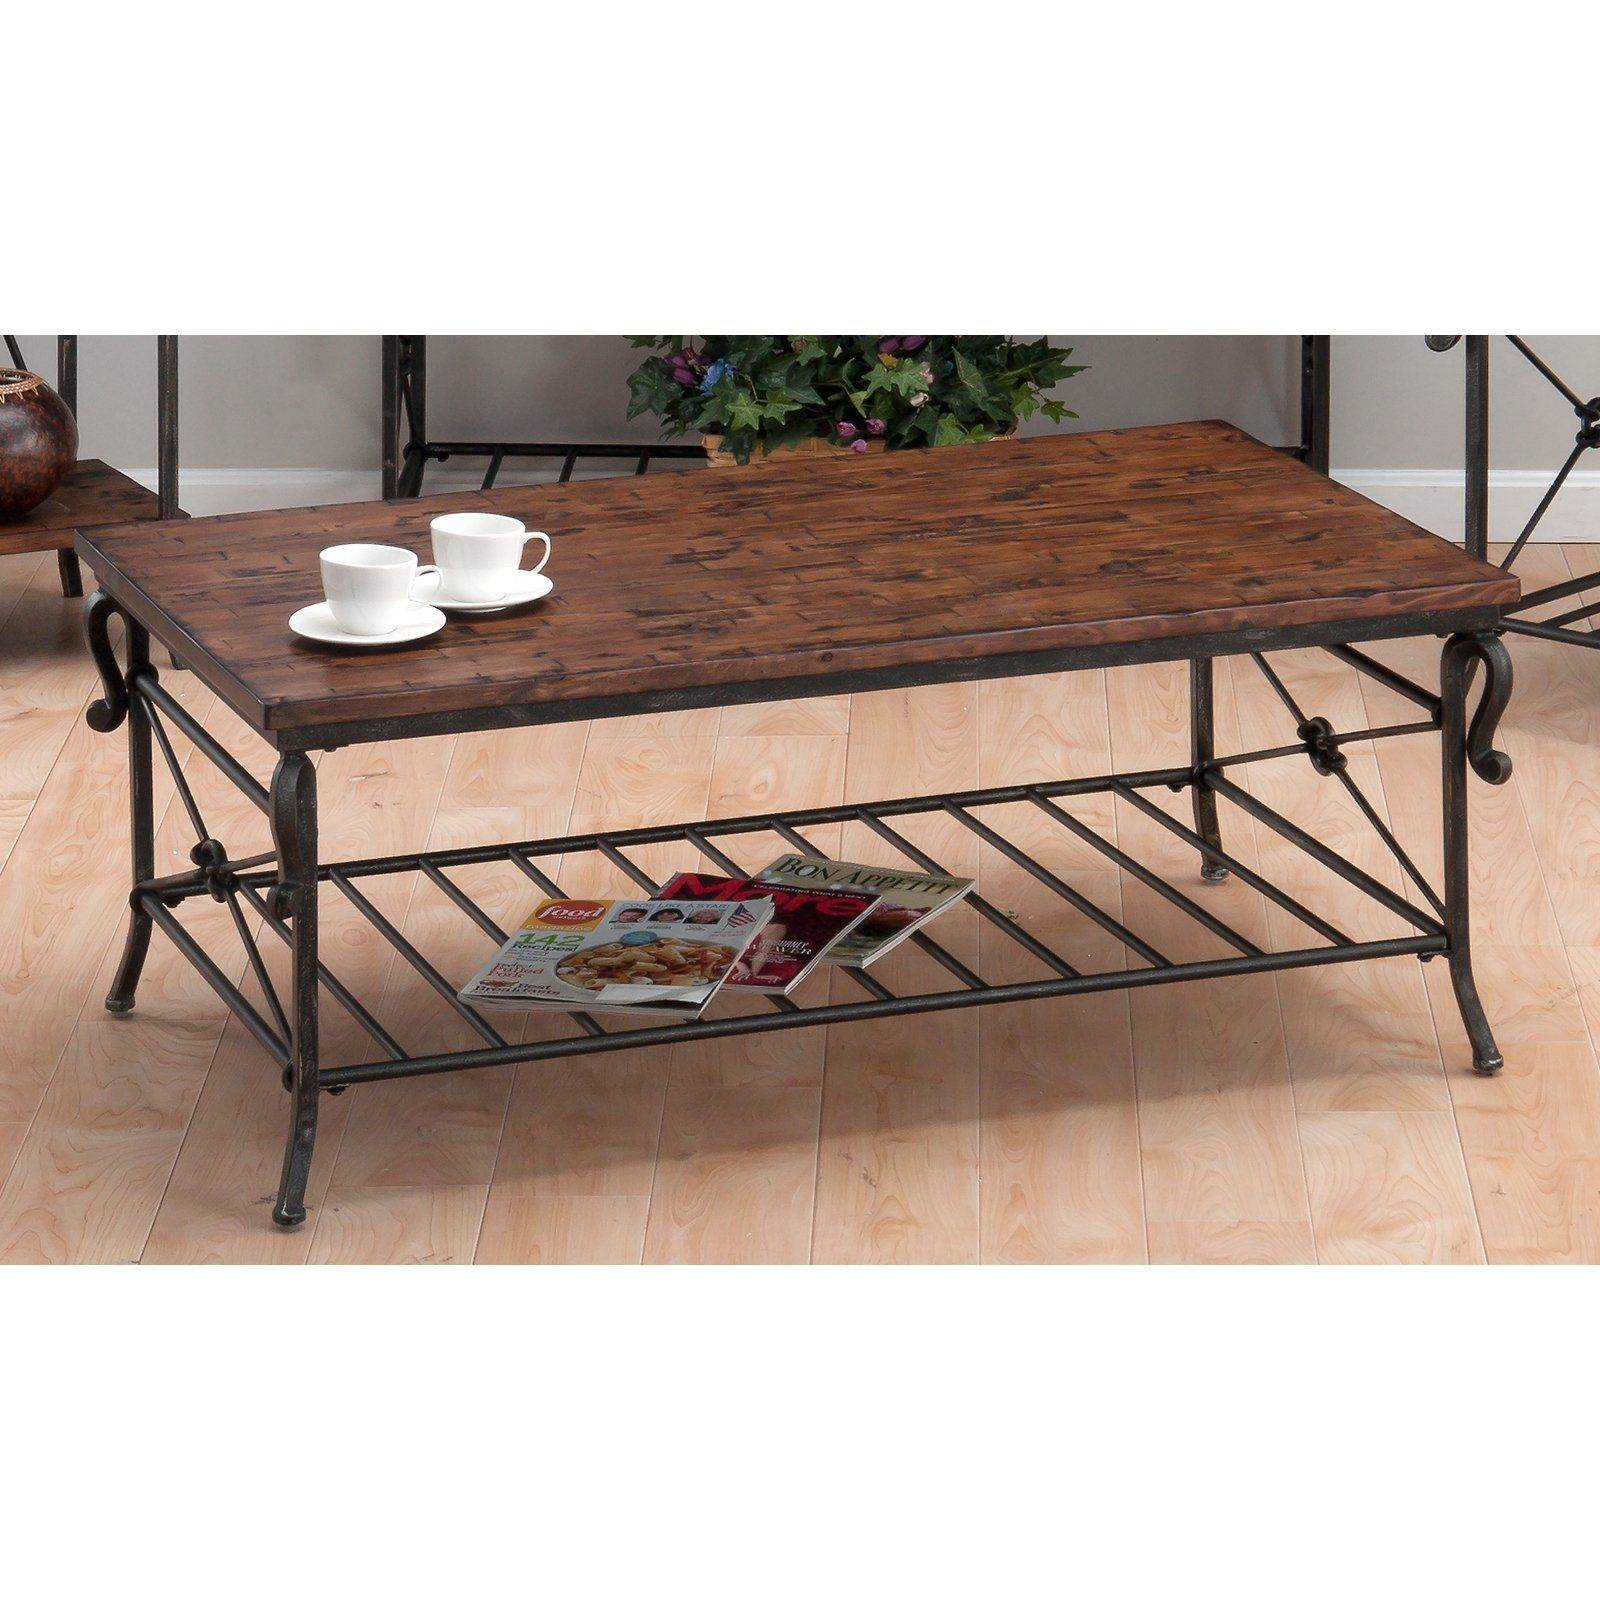 Have To Have It Jofran Rutledge Pine Cocktail Table Rutledge Pine 341 55 Hayneedle Coffee Table Coffee Table Wood Bamboo Coffee Table [ 1600 x 1600 Pixel ]